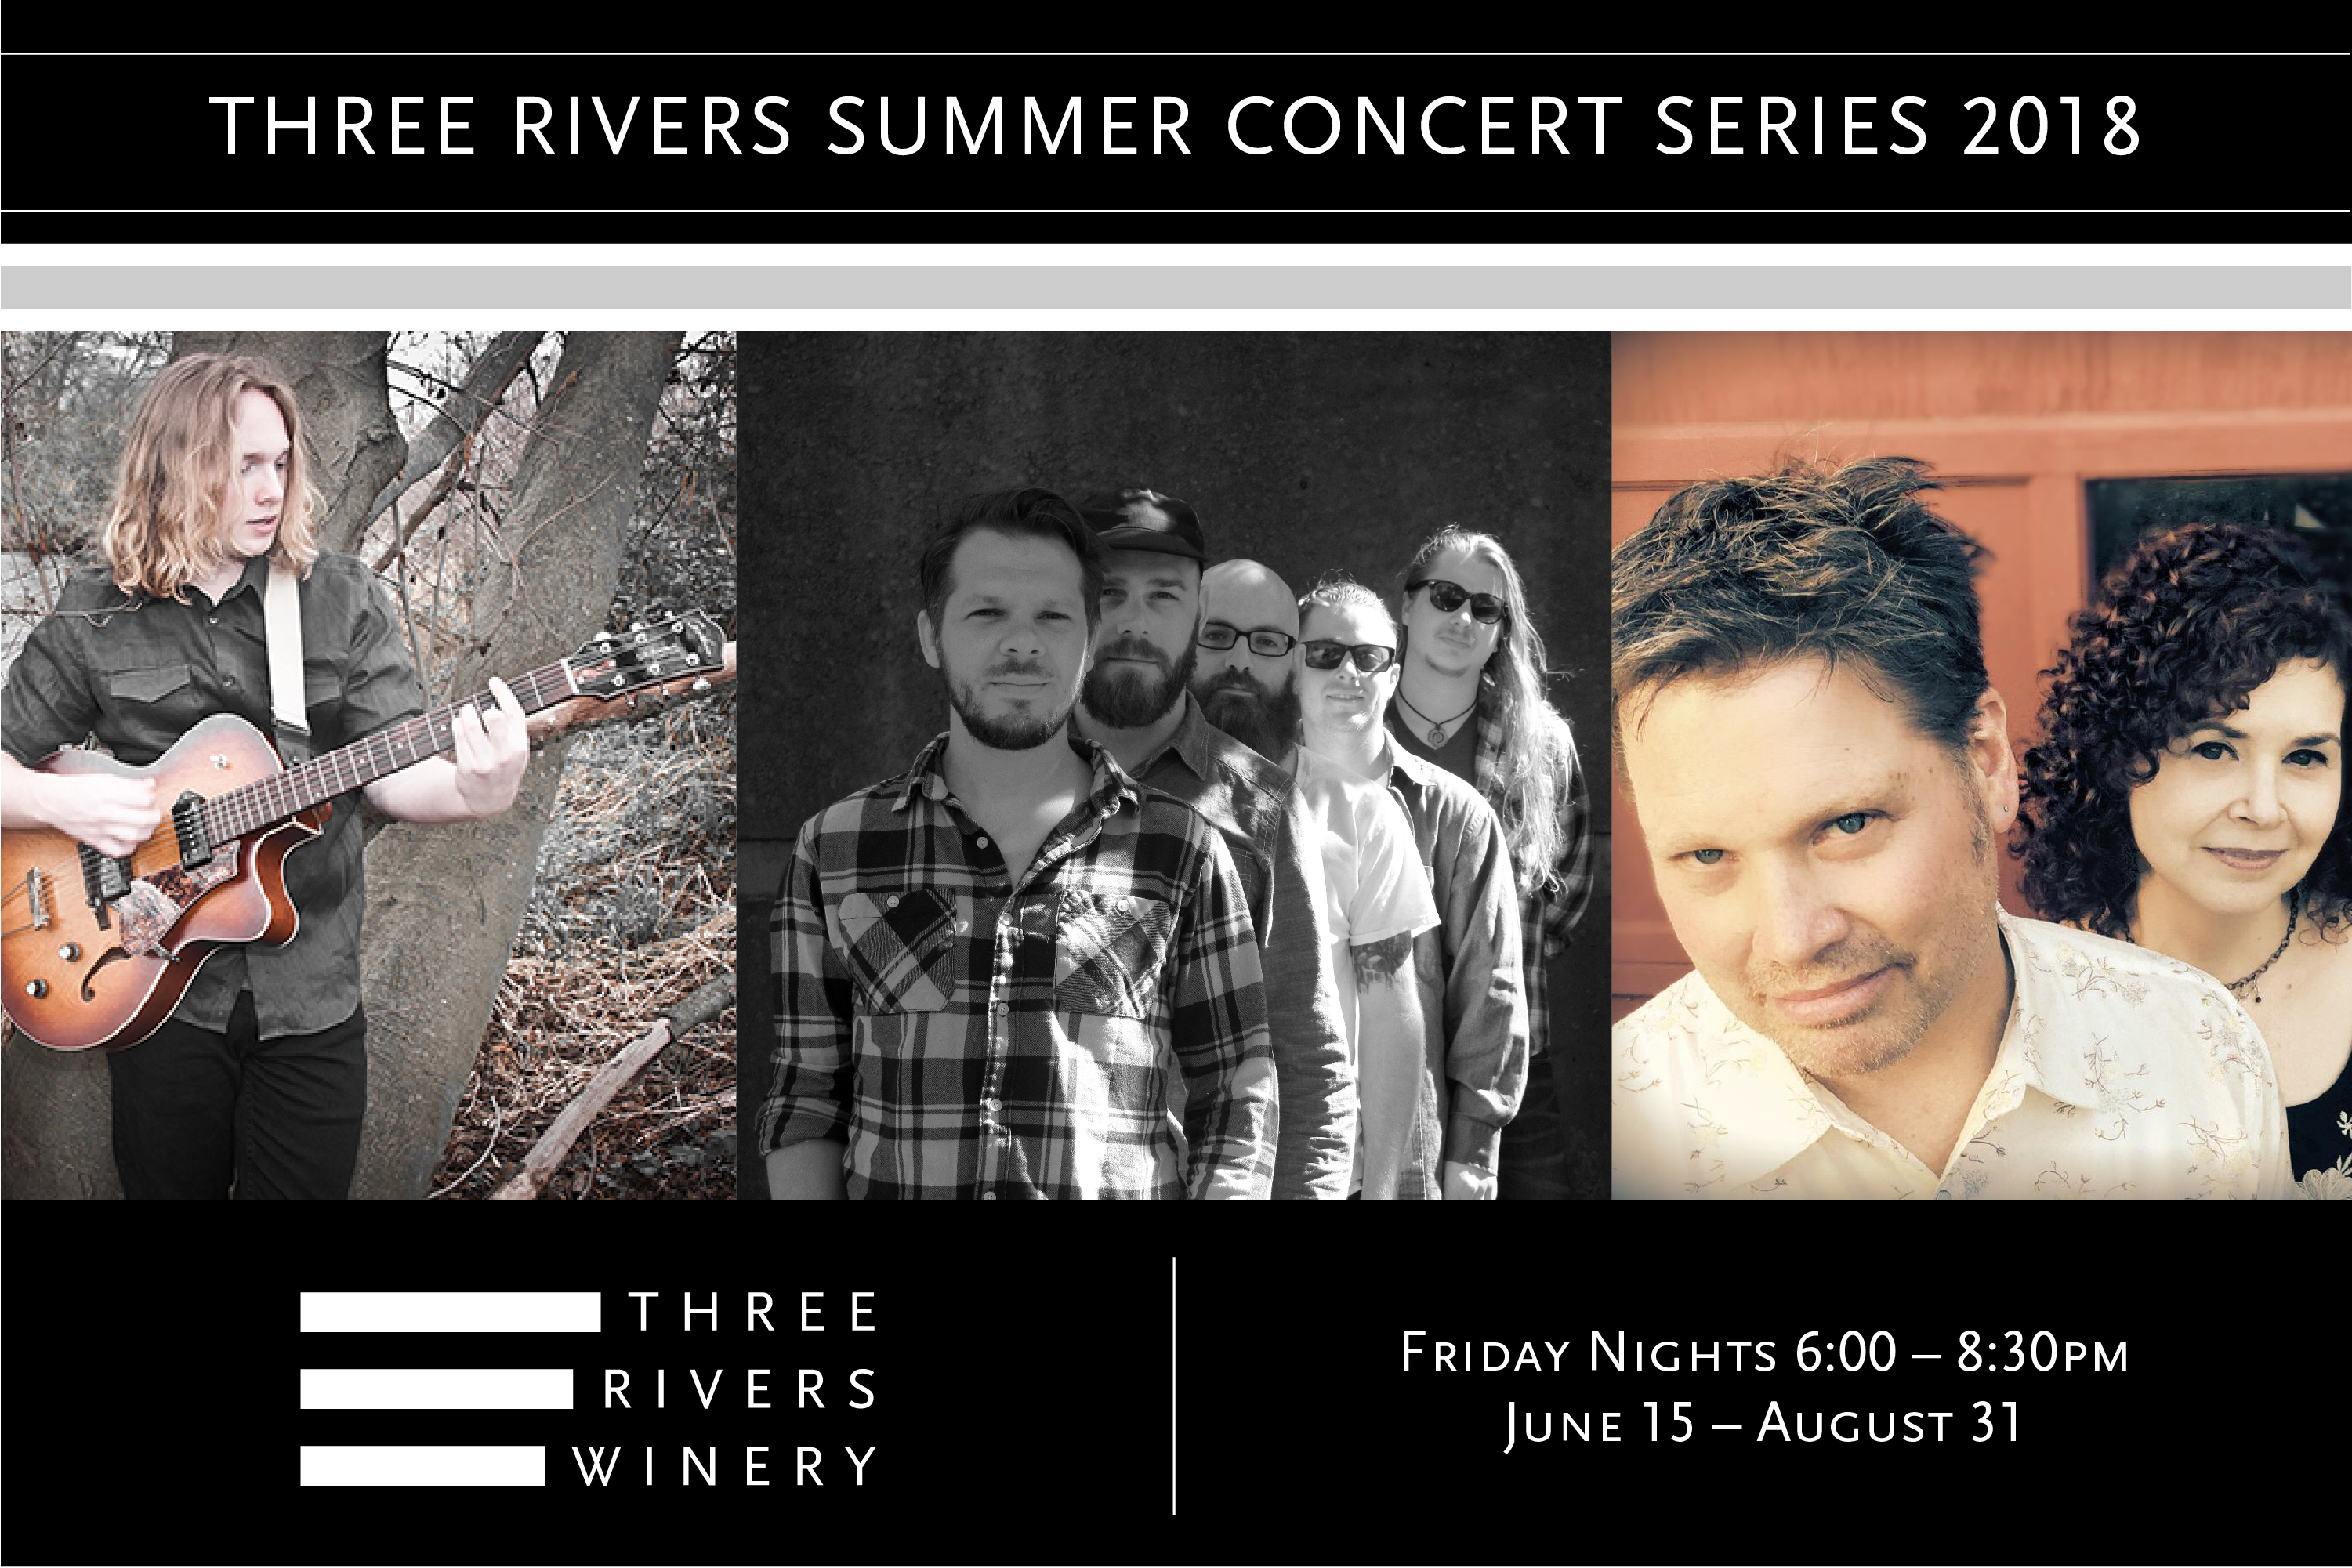 Three Rivers Summer Concert Series 2018 - Friday Nights - 6:00-8:30pm - June 15-August 31, 2018